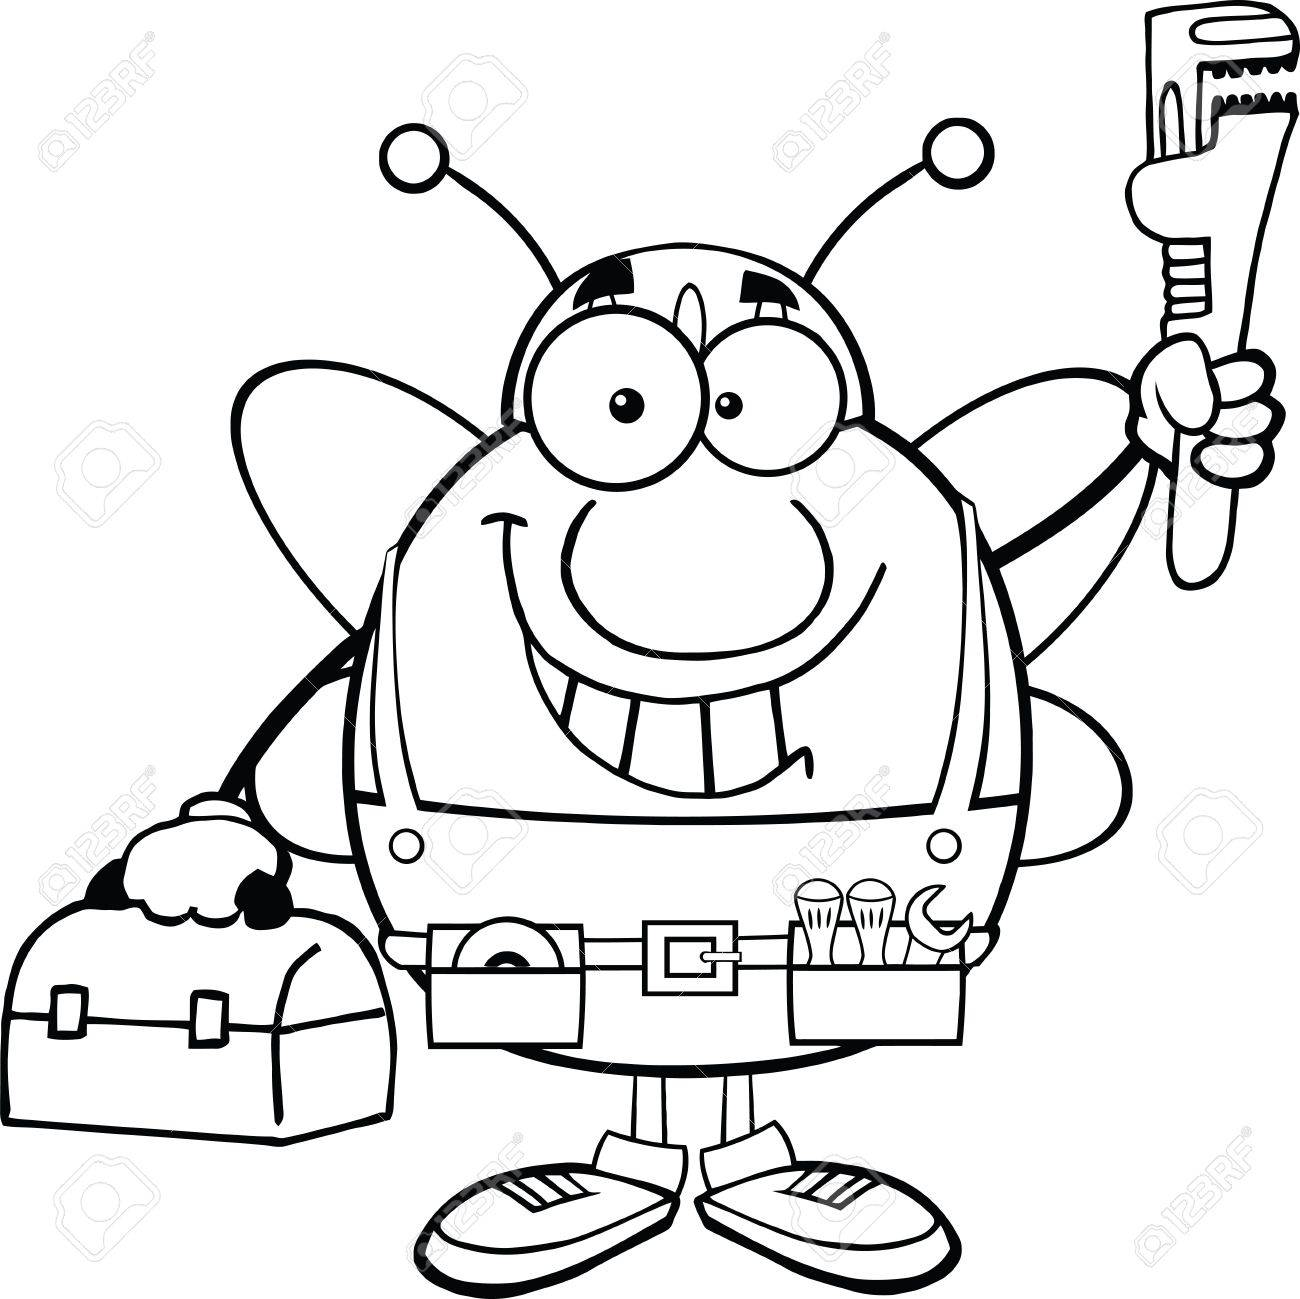 1300x1299 Black And White Pudgy Bee Plumber With Wrench And Tool Box Royalty